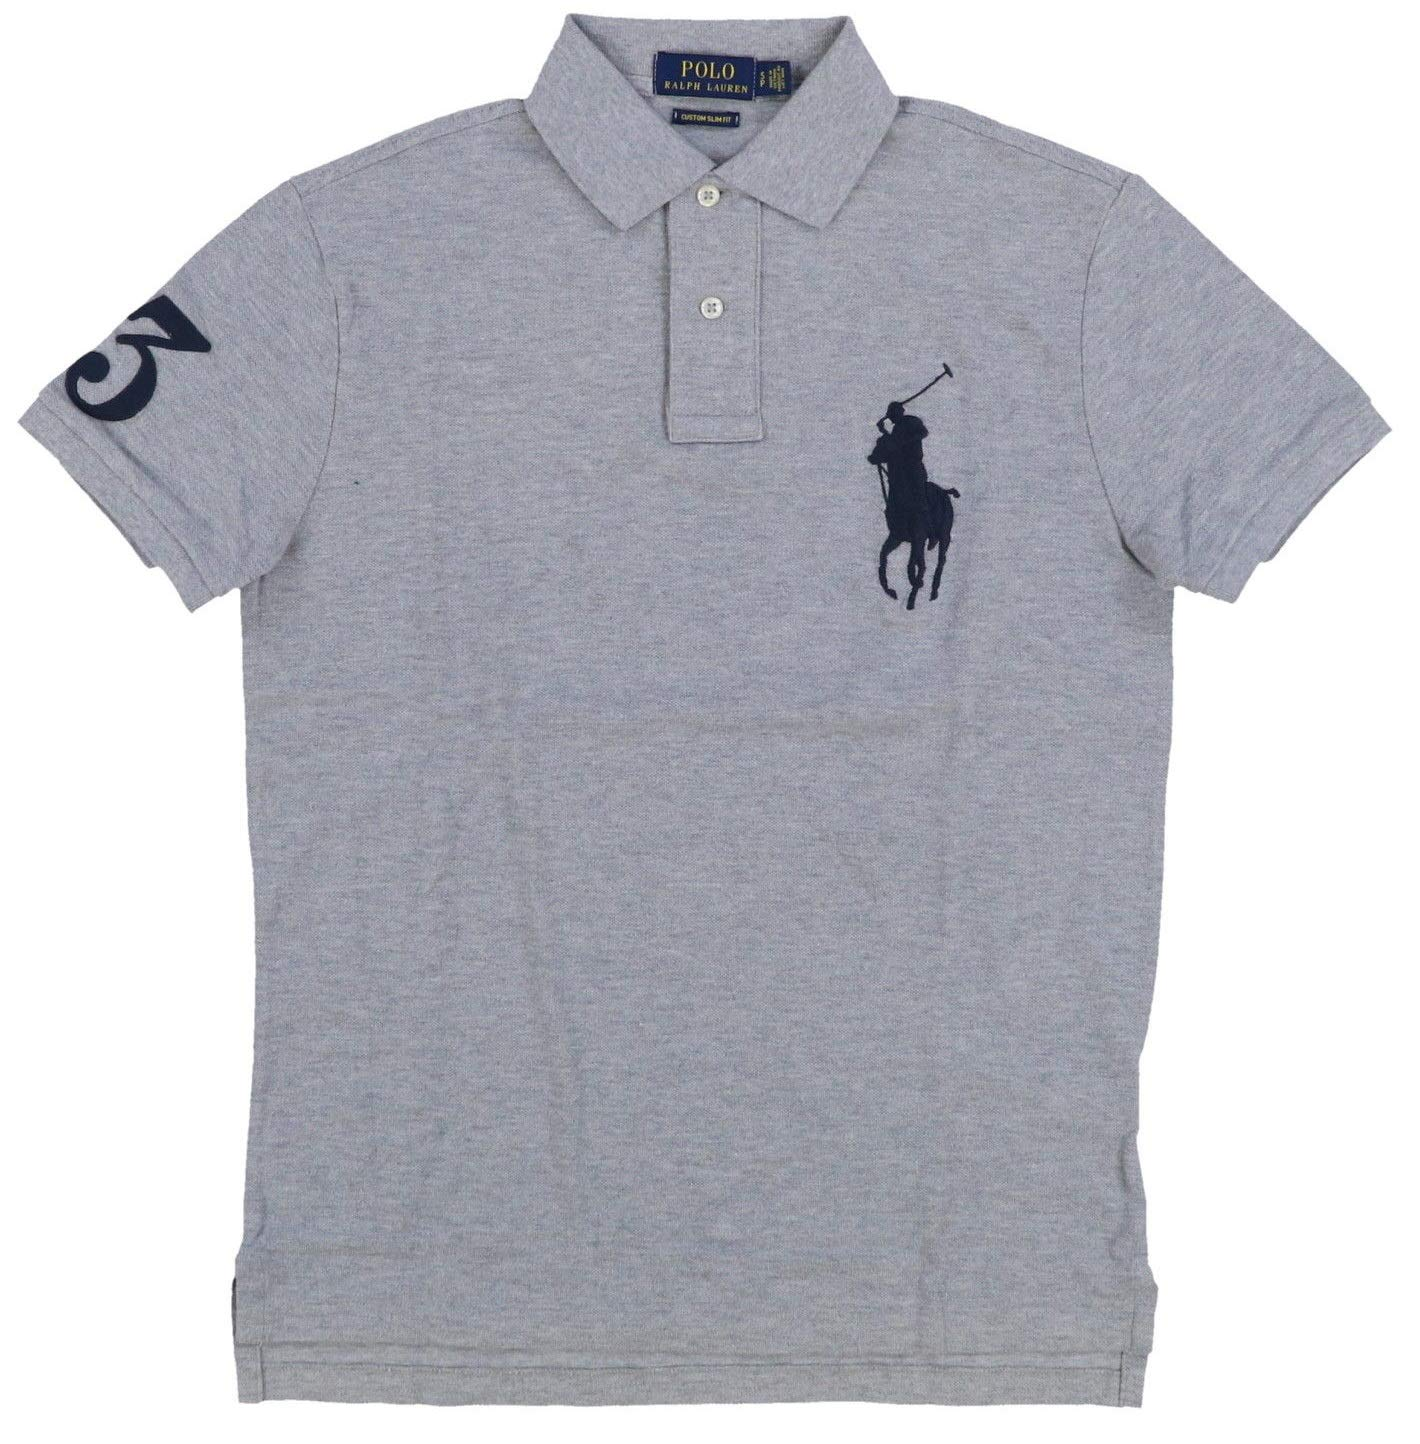 76348291 Galleon - Polo Ralph Lauren Mens Big Pony Custom Slim Fit Mesh Polo Shirt ( Large, Grey Heather)